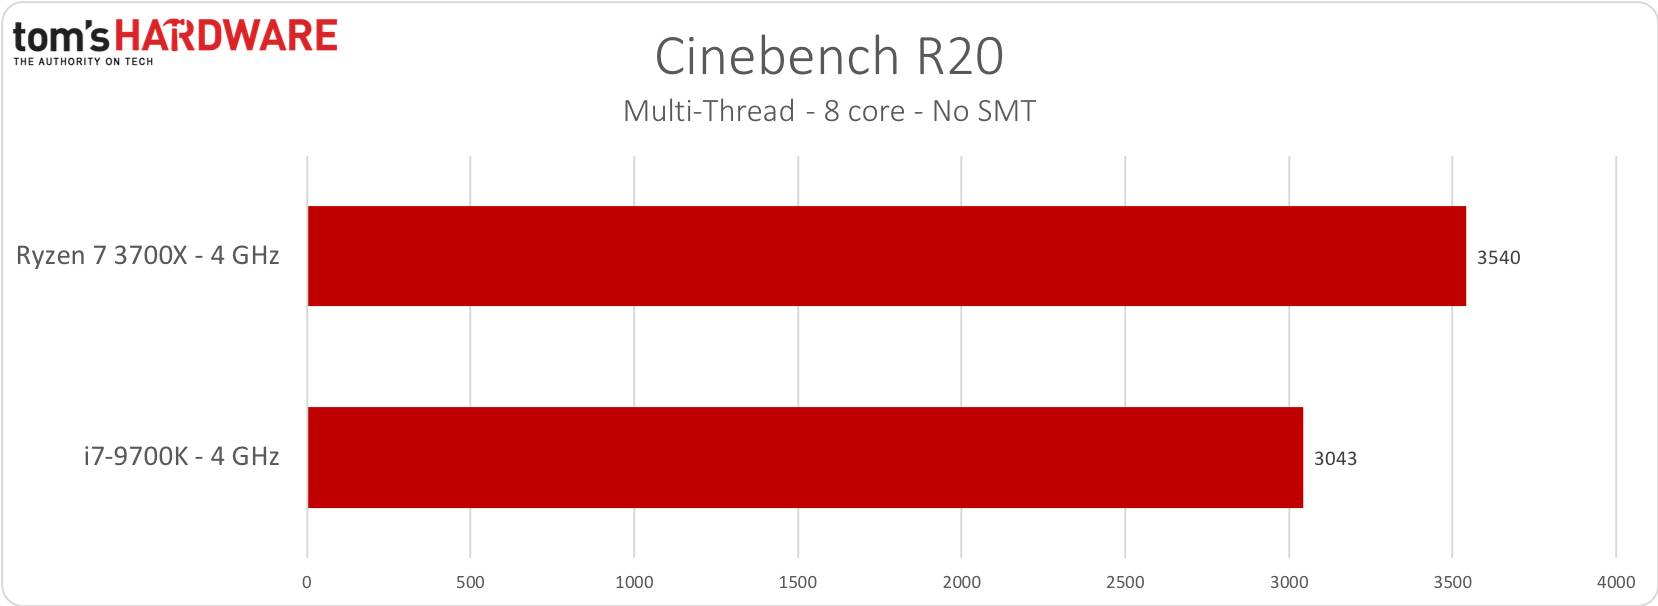 Cinebench R20 nT - 4GHz